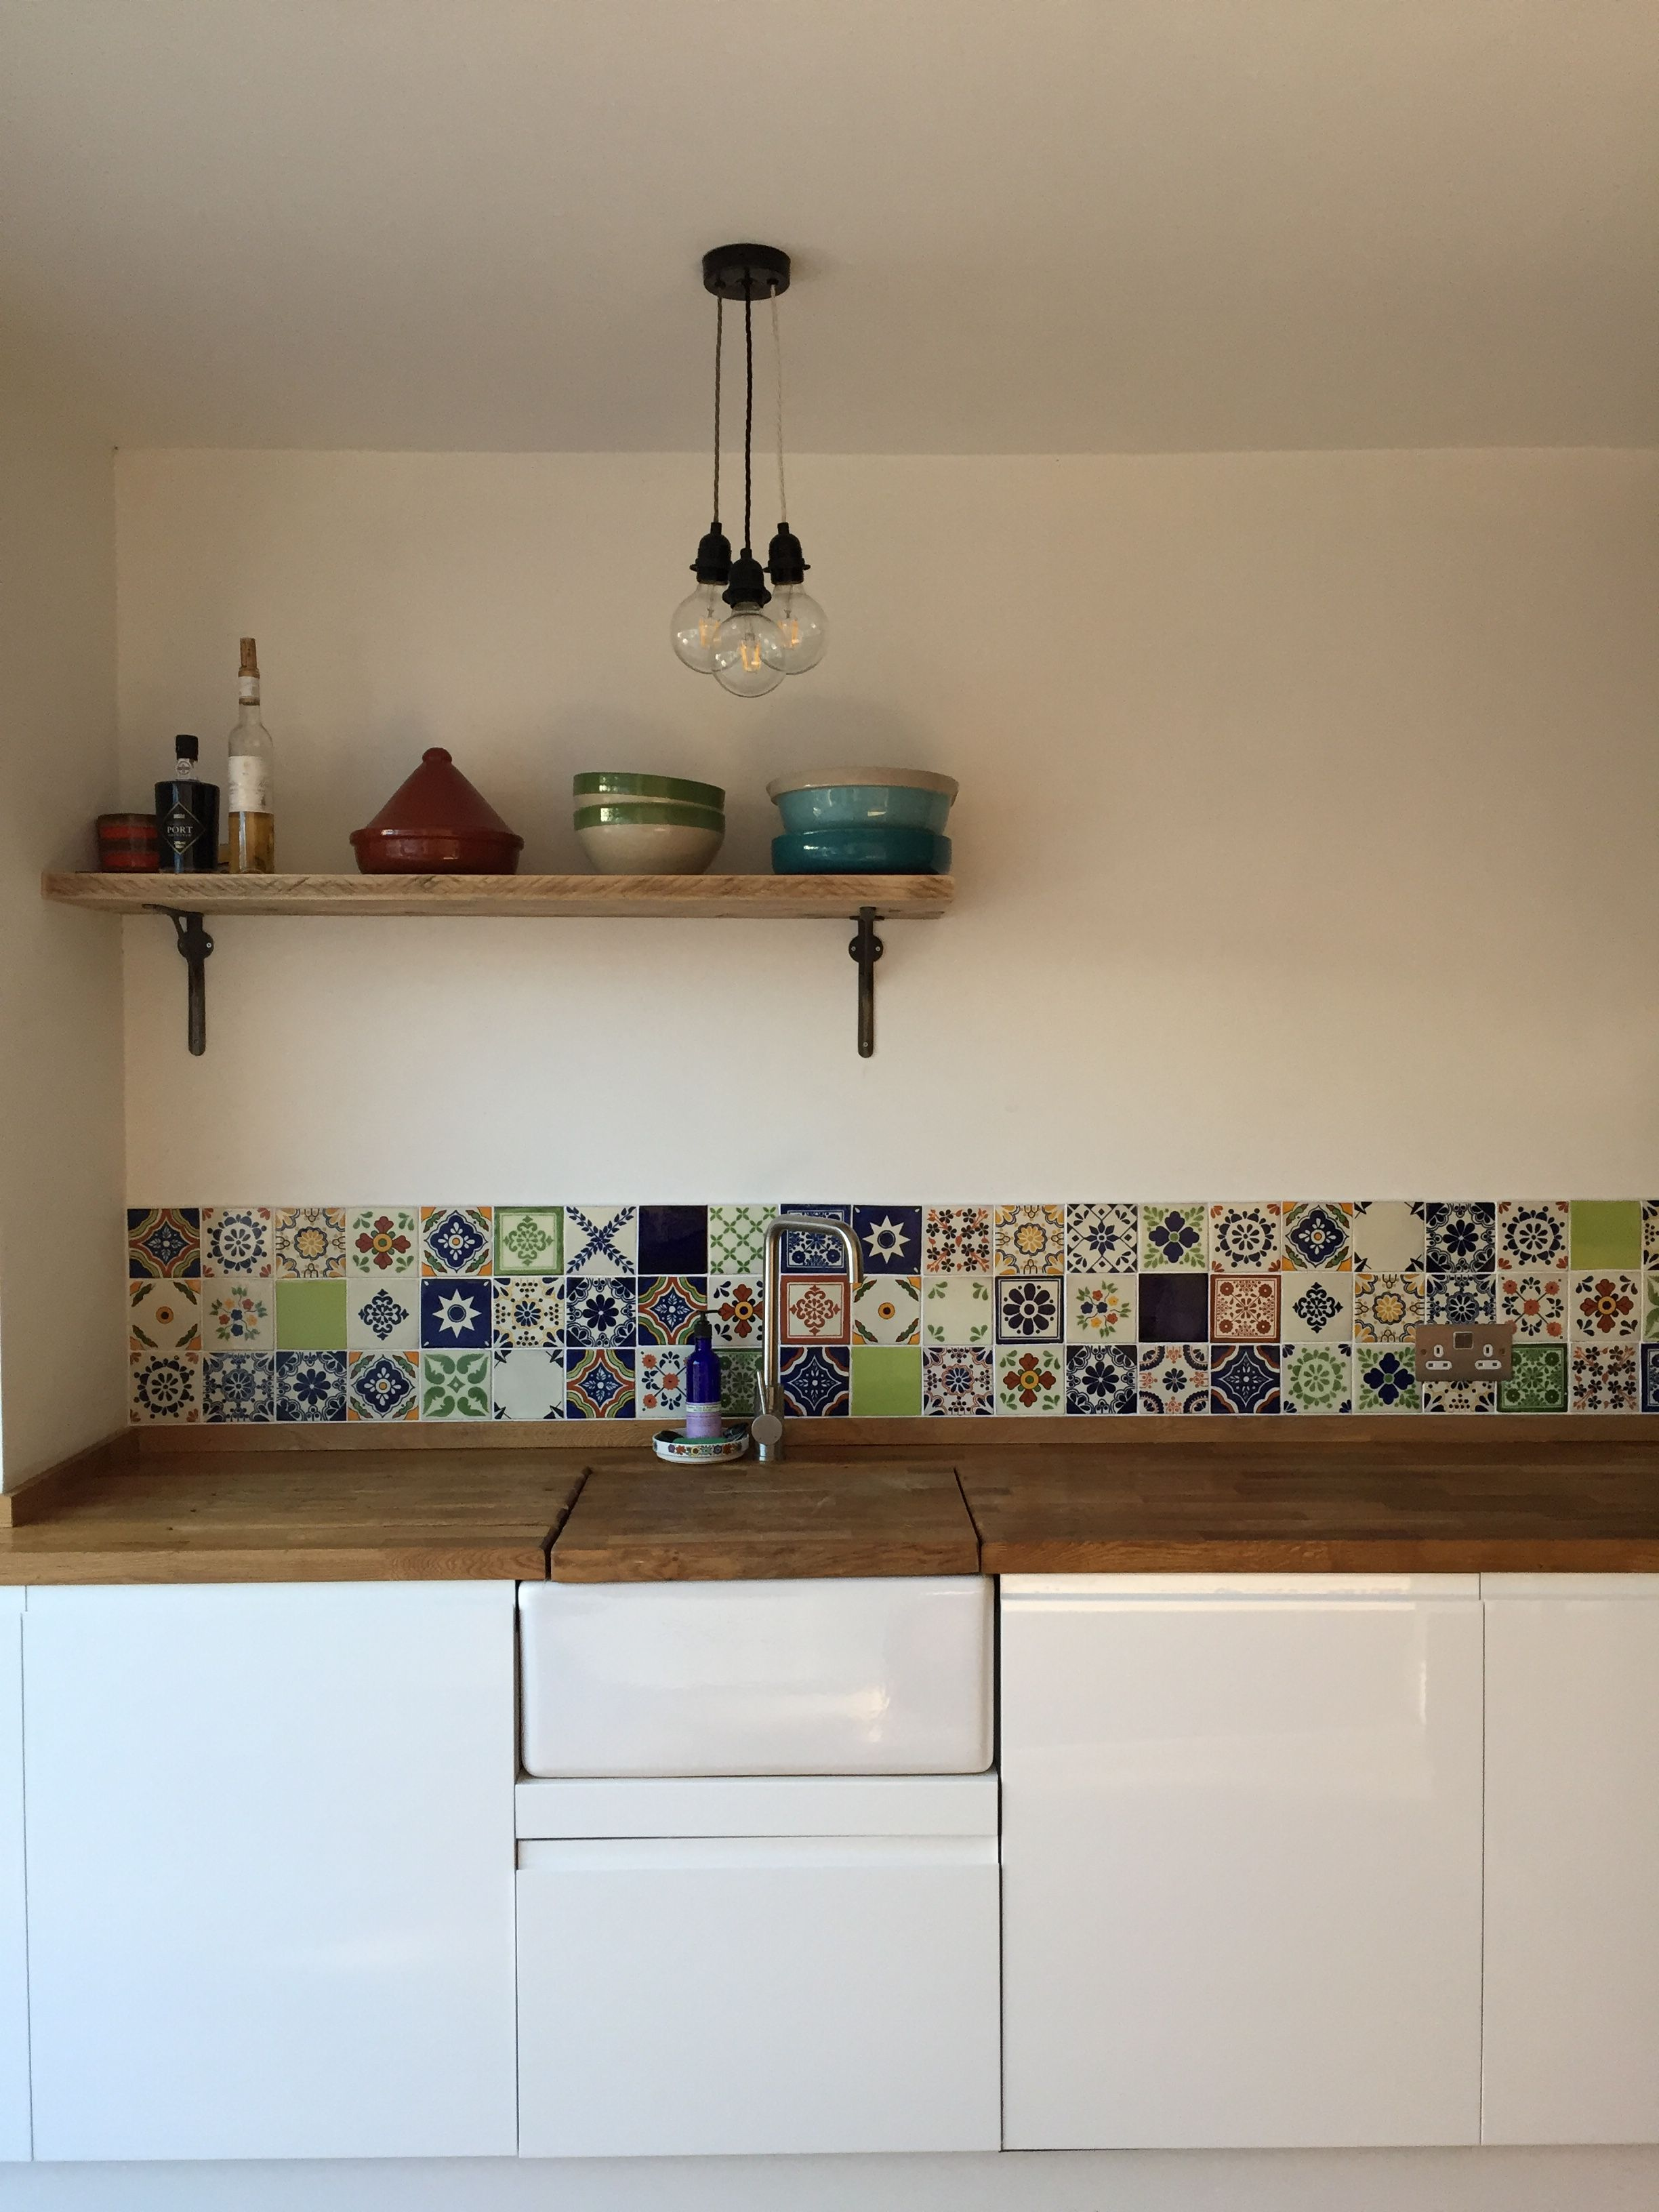 My fab new kitchen complete with Moroccan tiles, butlers sink and lovely crockery. Lucky lady.,